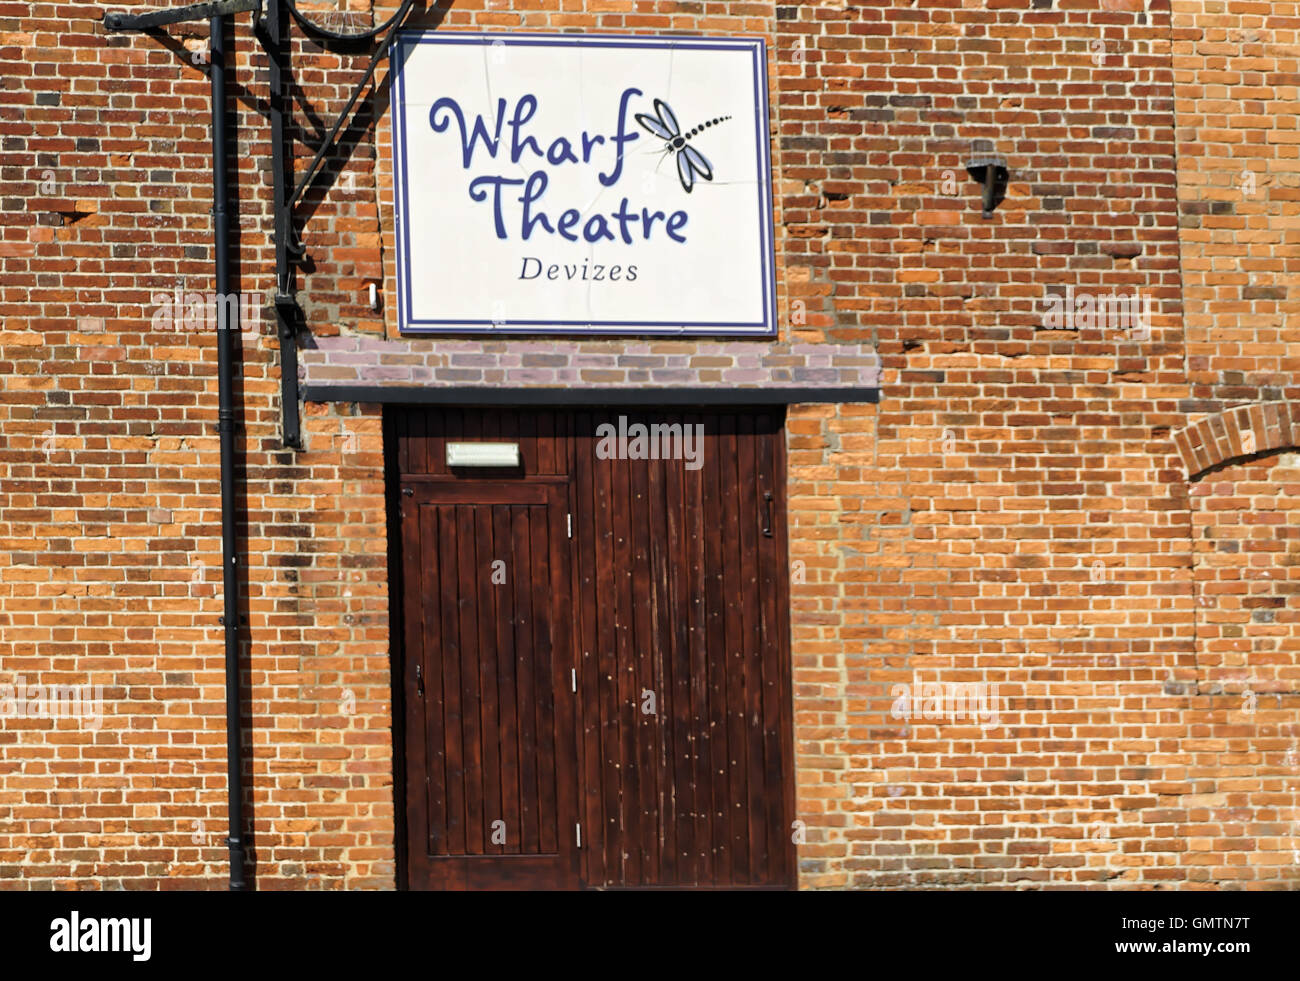 wharf Theatre in Devizes Wiltshire - Stock Image